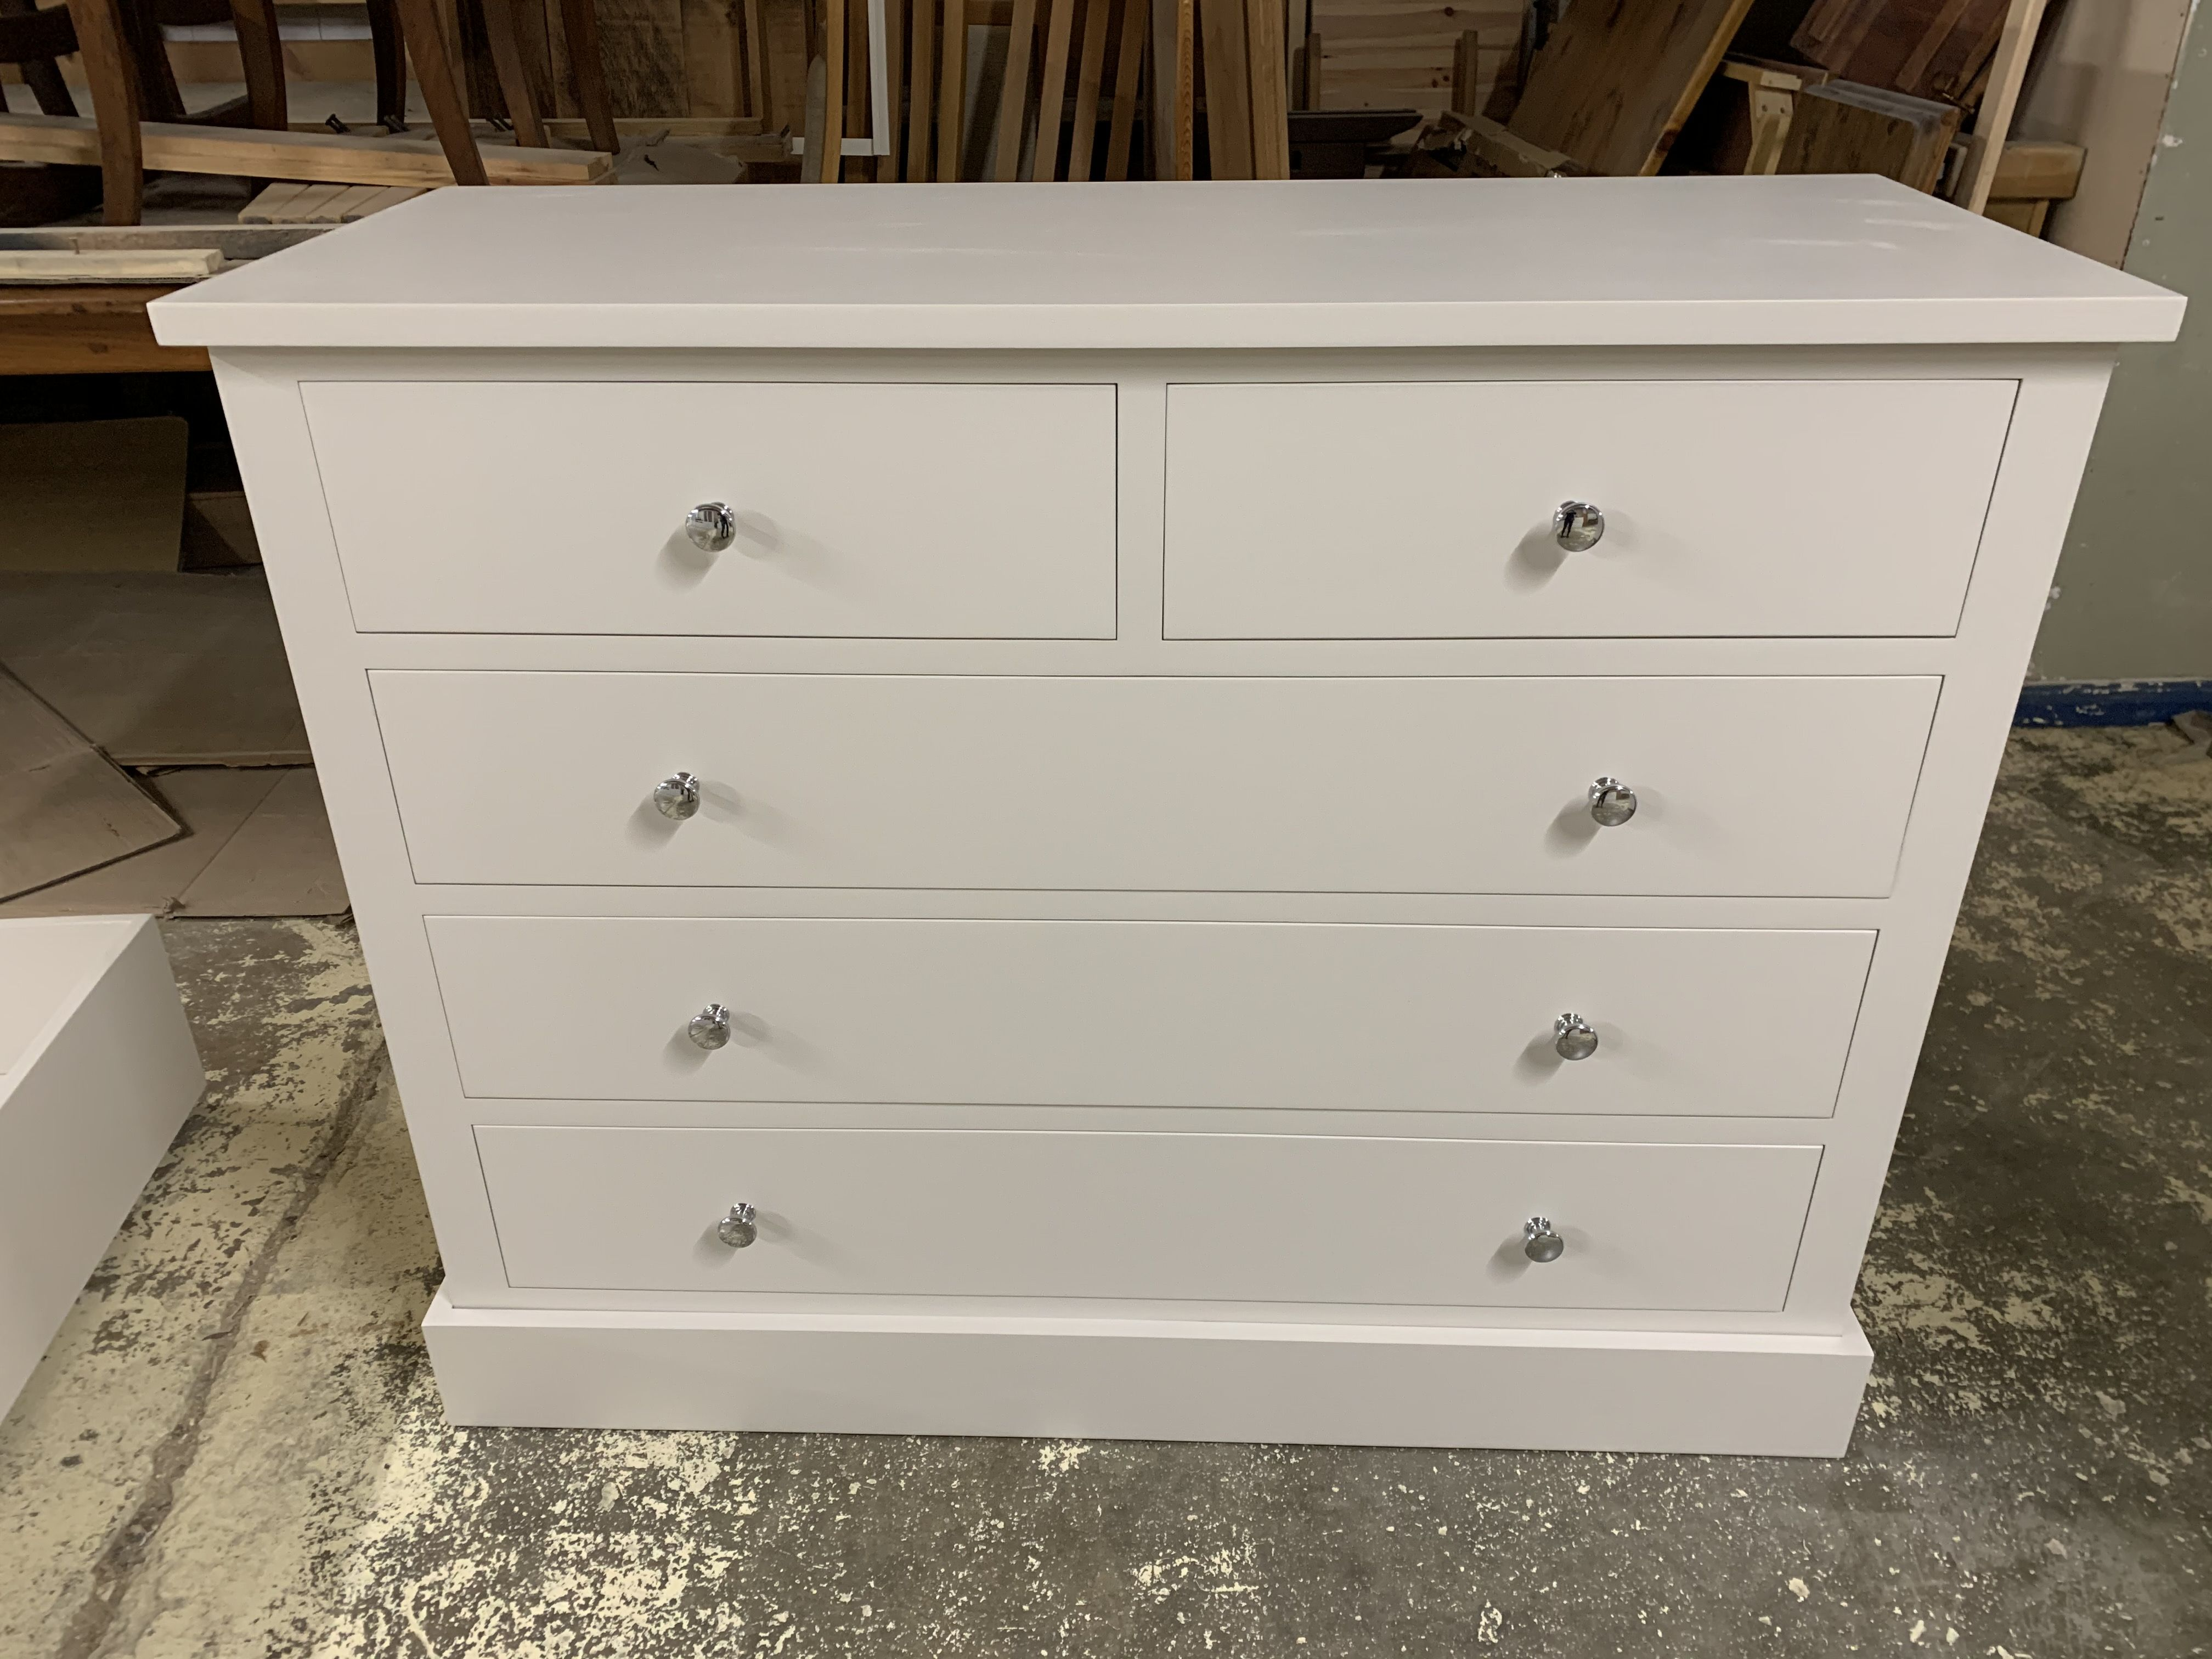 Painted Chest Of Drawers Rustic Dresser Large Dresser Solid Wood Dresser [ 3024 x 4032 Pixel ]